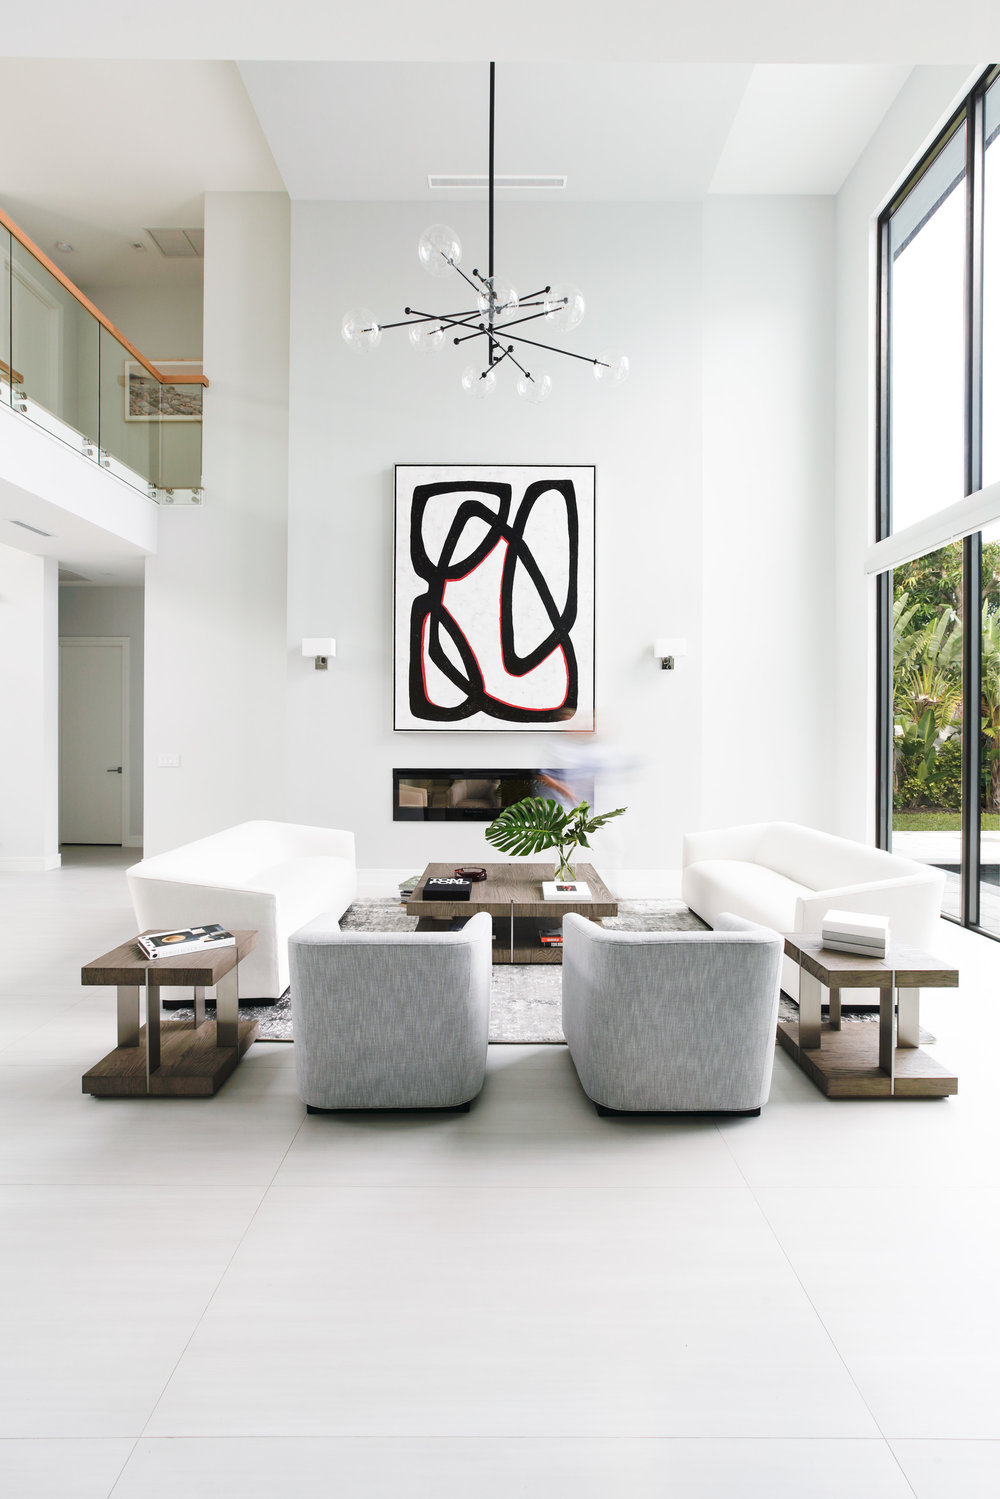 Contemporary Design - Boca Raton-4.jpg